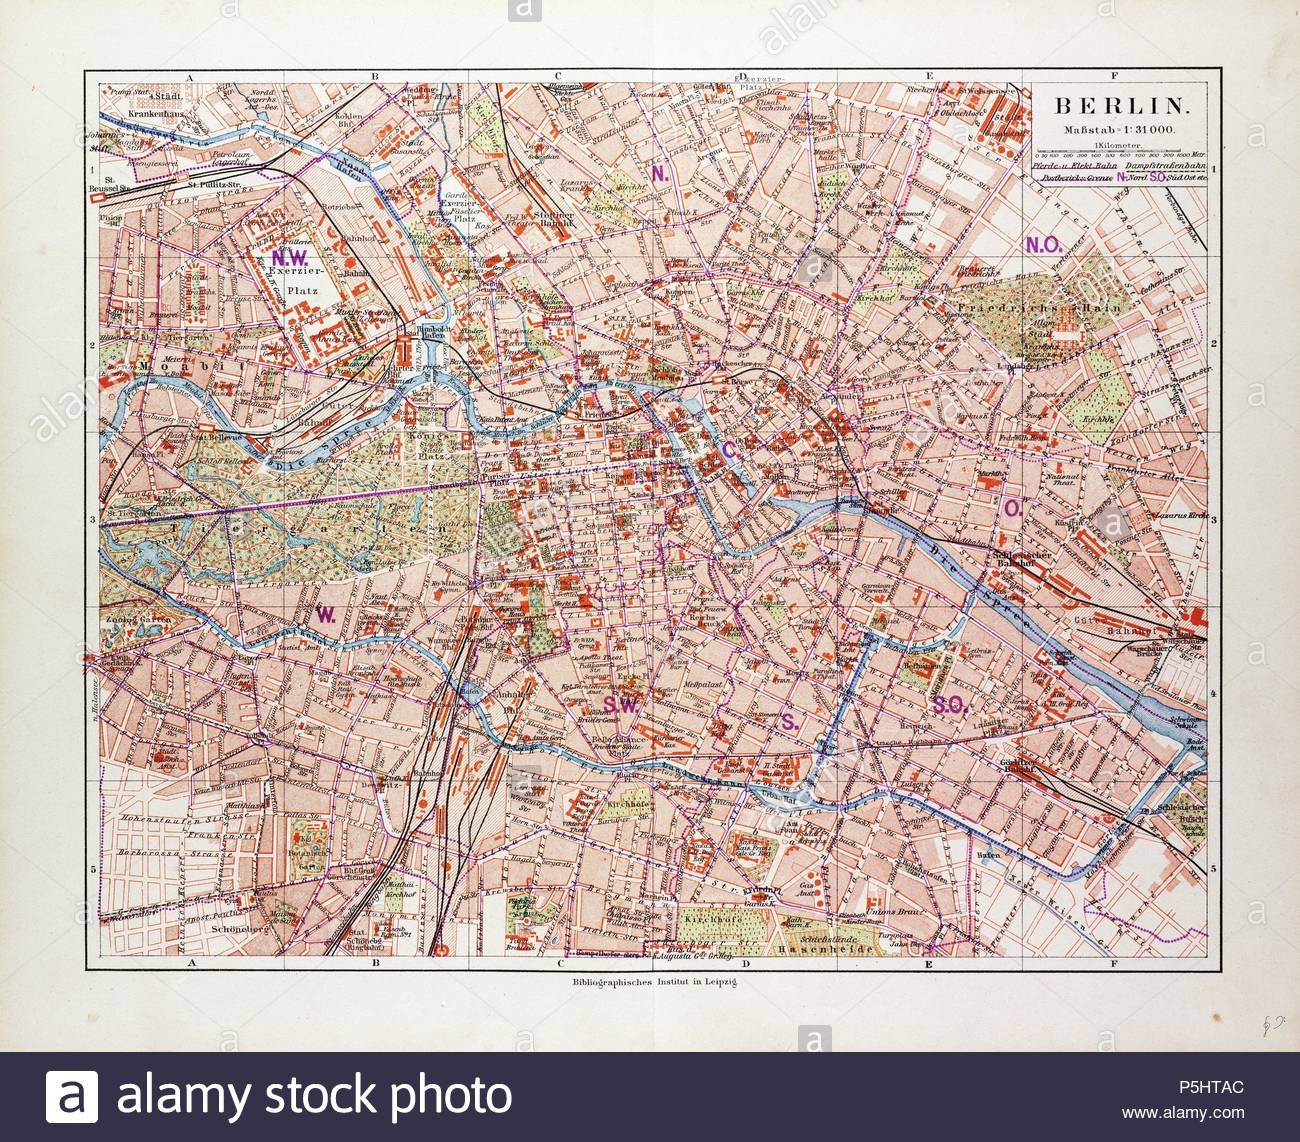 Map Of Berlin Germany 1899 Stock Photo 209989988 Alamy